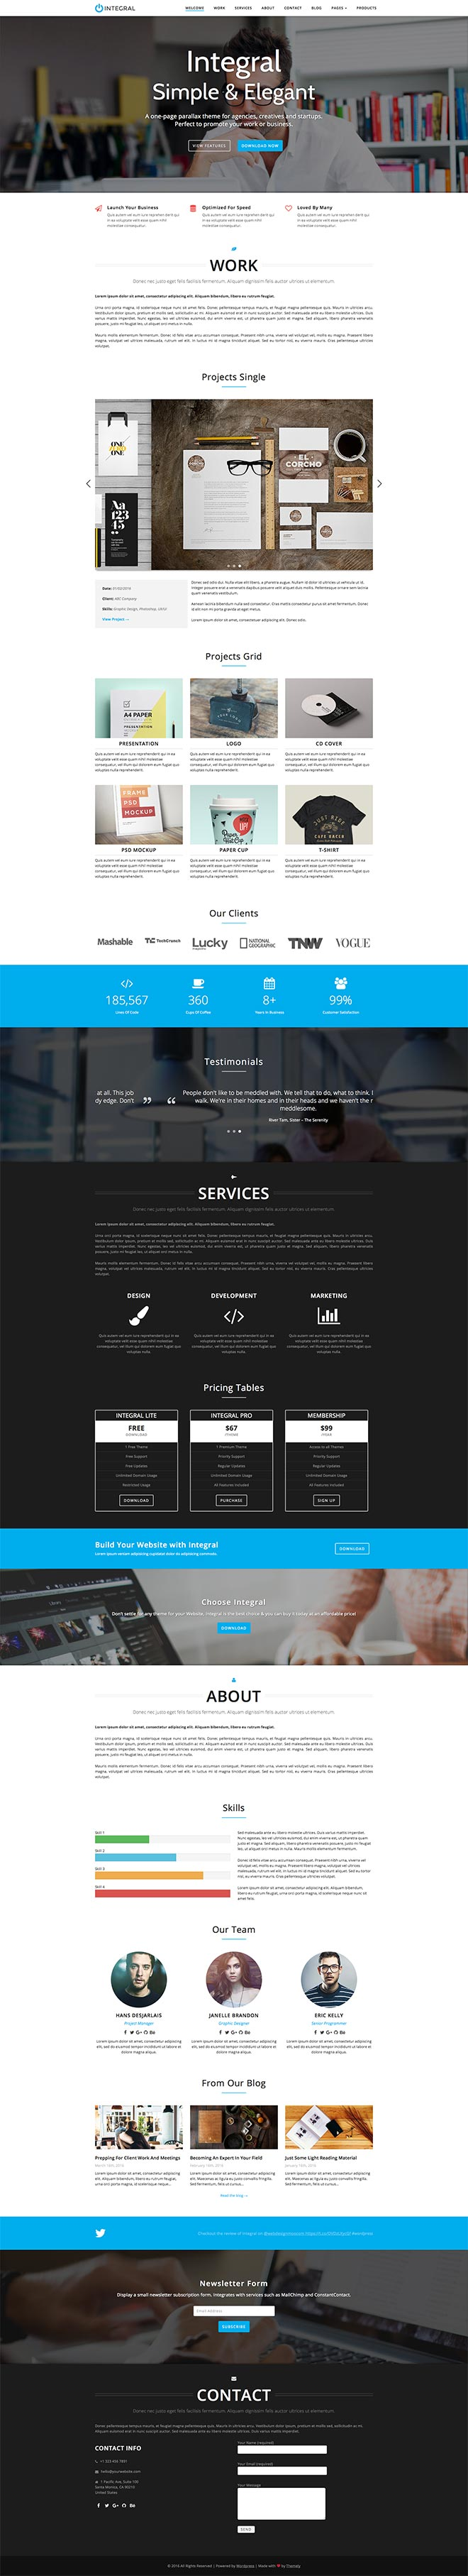 Integral Pro WordPress Theme